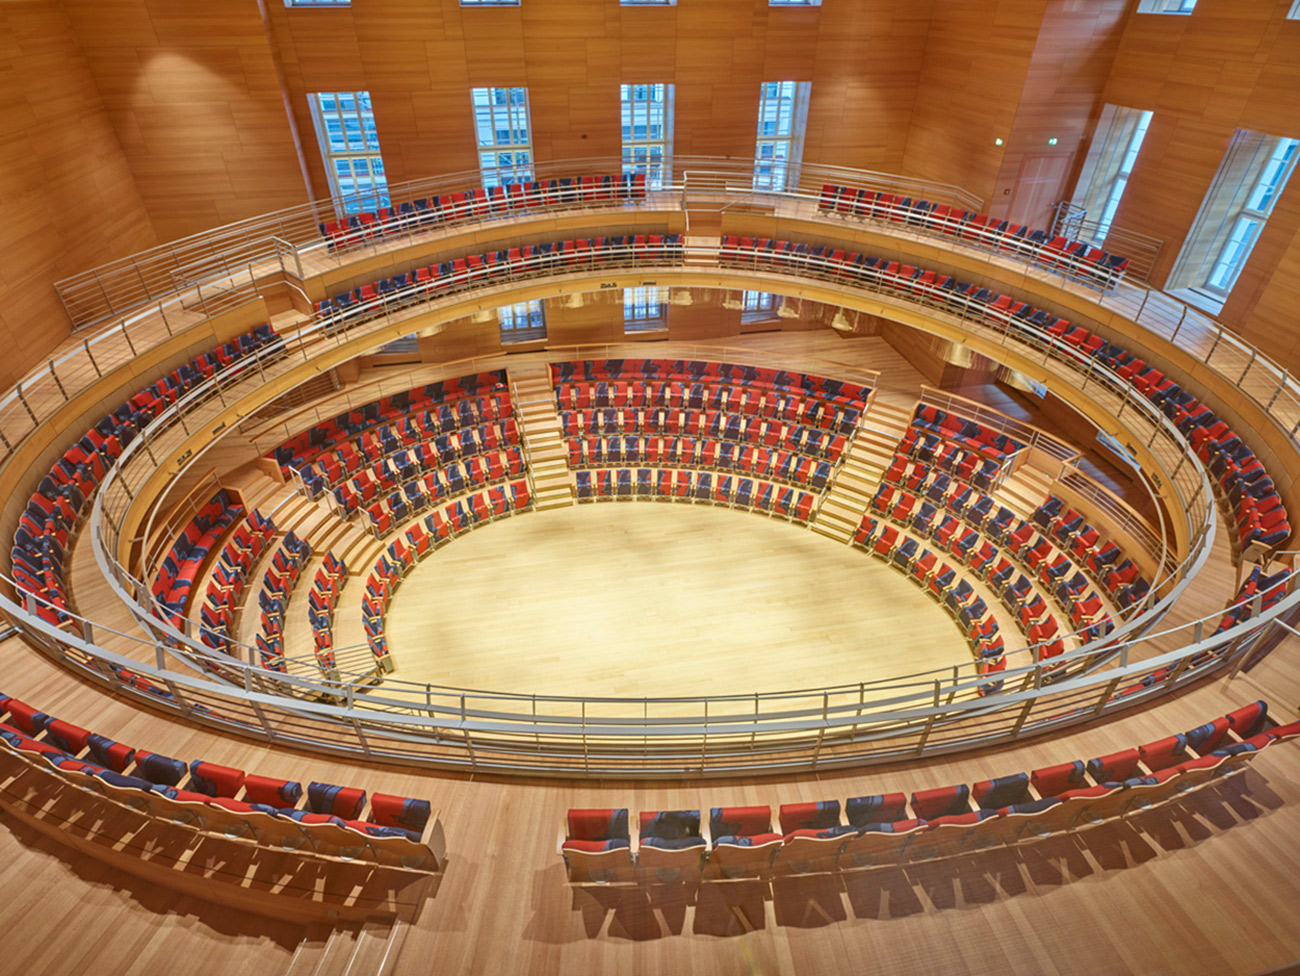 Interior view of a circular concert hall with a central stage and wood walls, floors, and seats